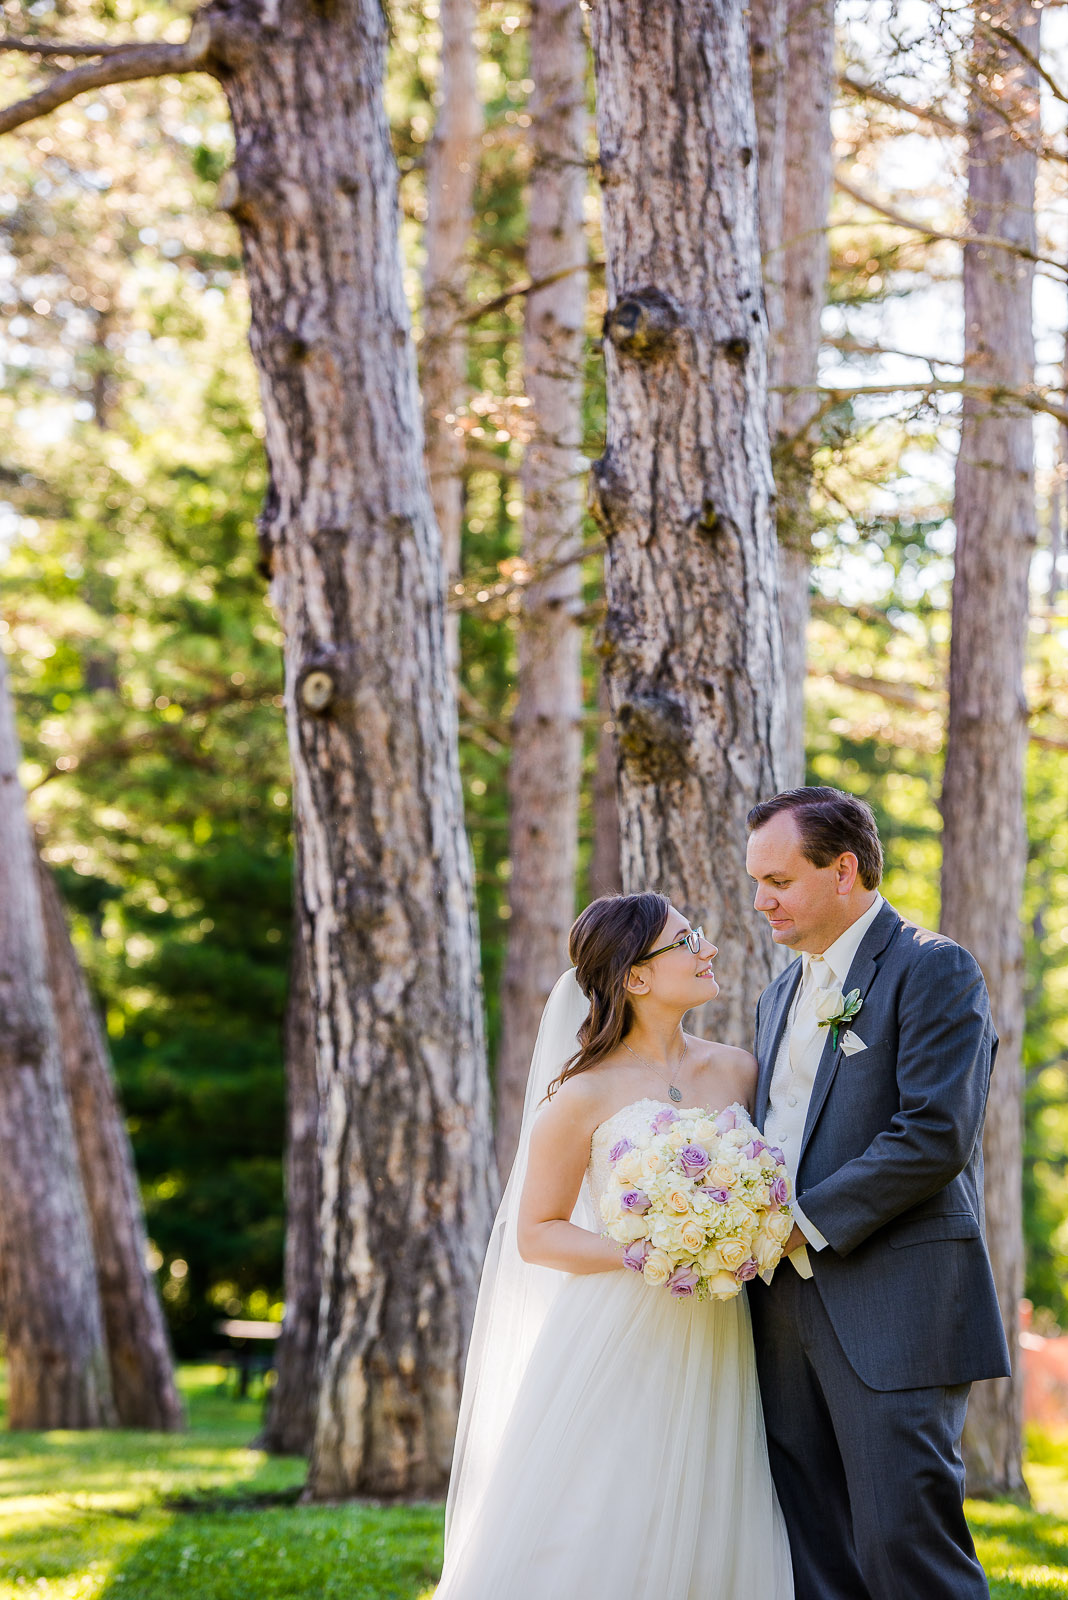 Eric_and_Christy_Photography_Blog_2018_Portraits-39